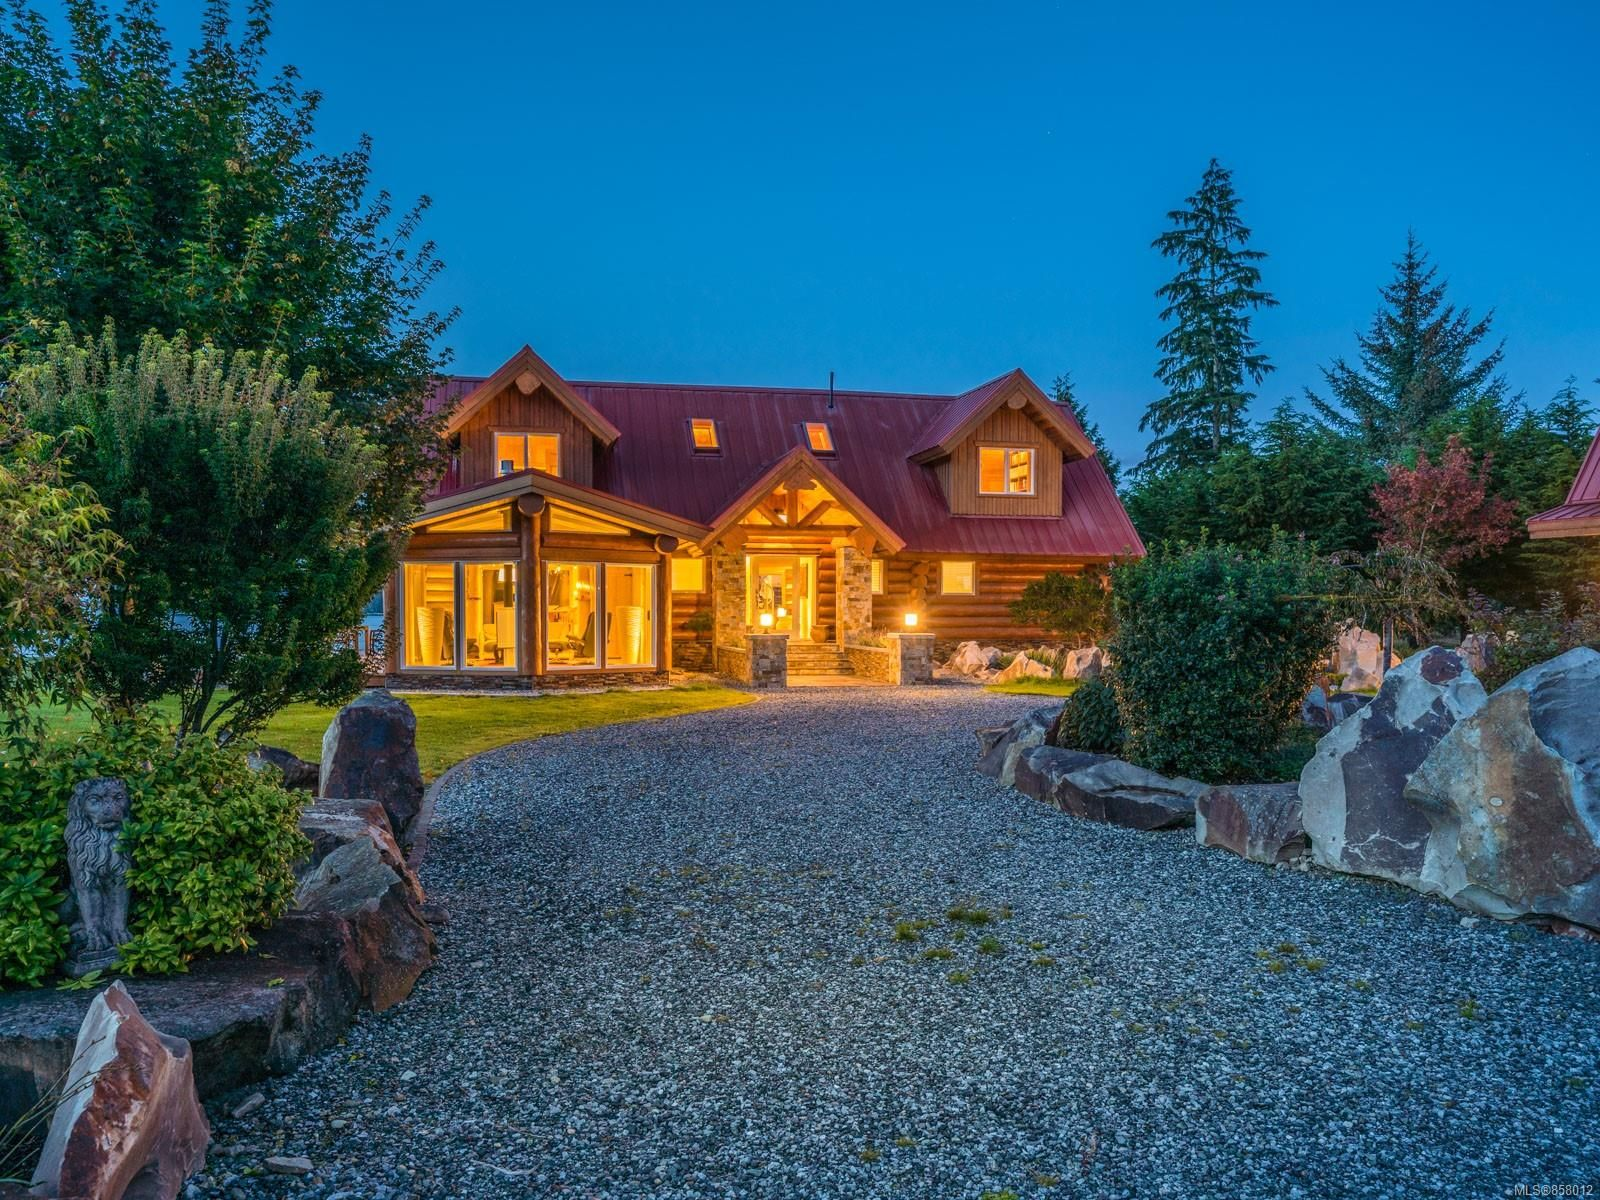 Photo 3: Photos: 6030 MINE Rd in : NI Port McNeill House for sale (North Island)  : MLS®# 858012